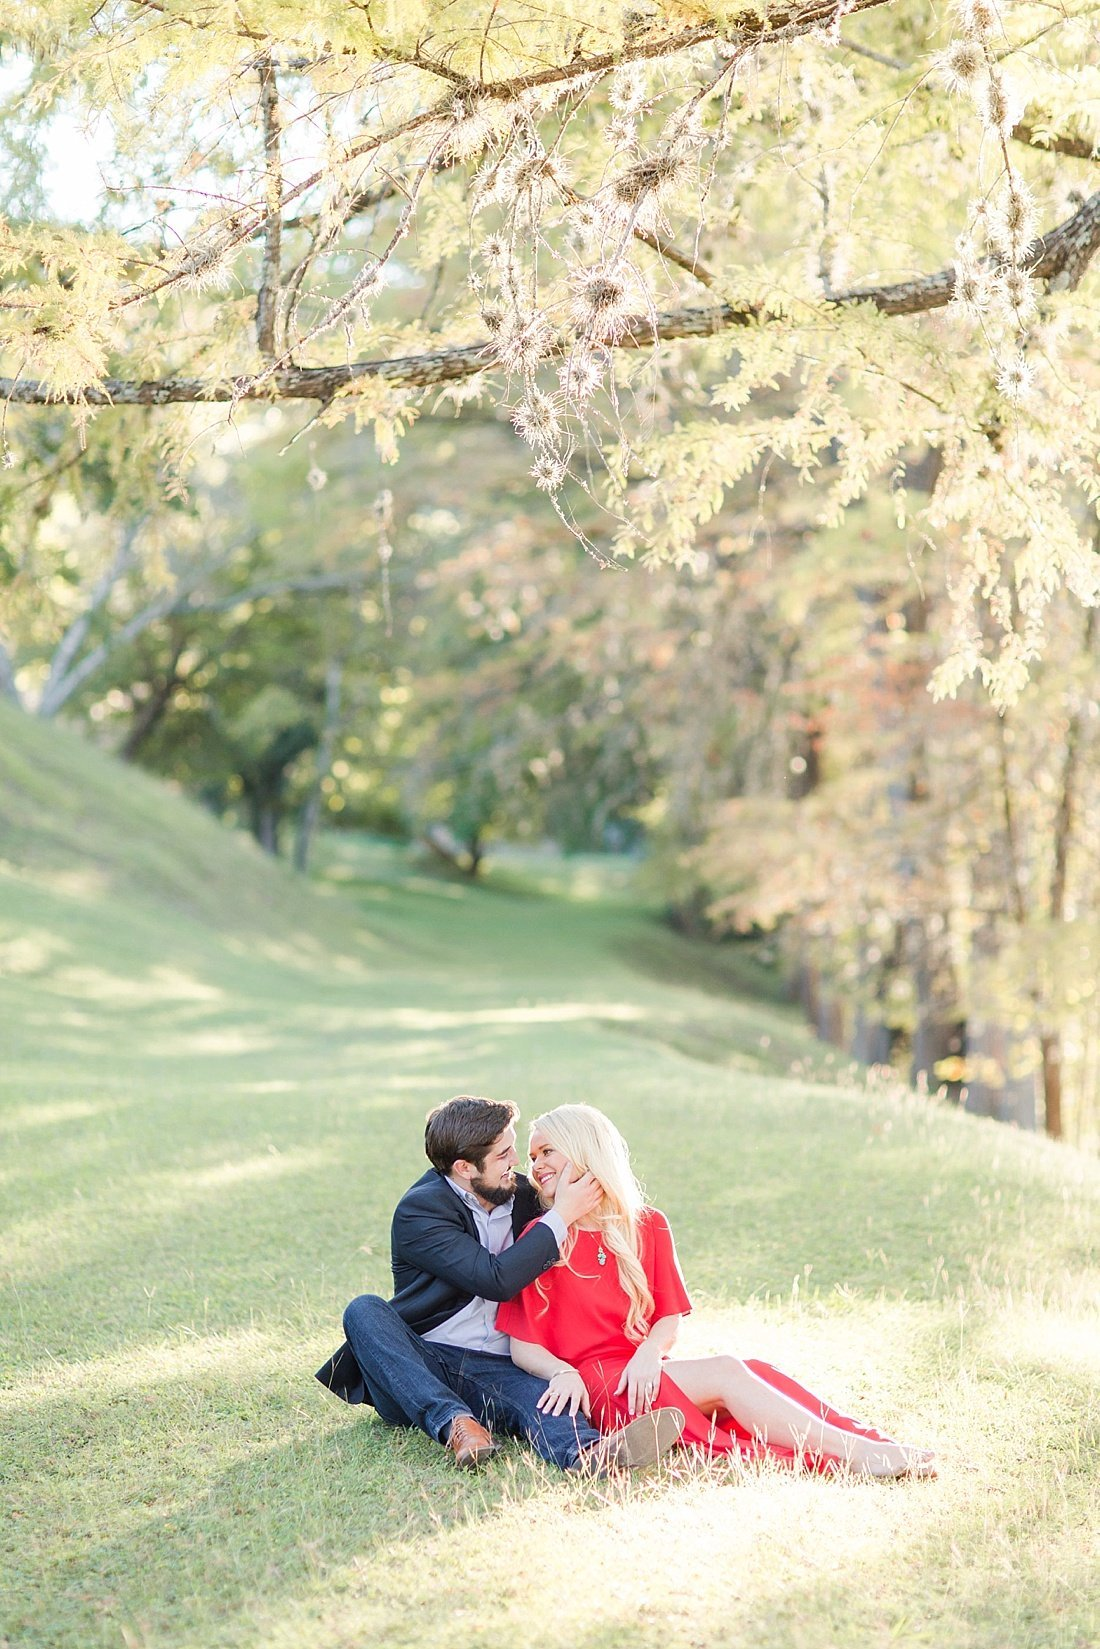 Camp Rio Vista and Camp Sierra Vista wedding engagement photos in Ingram, Texas_0013